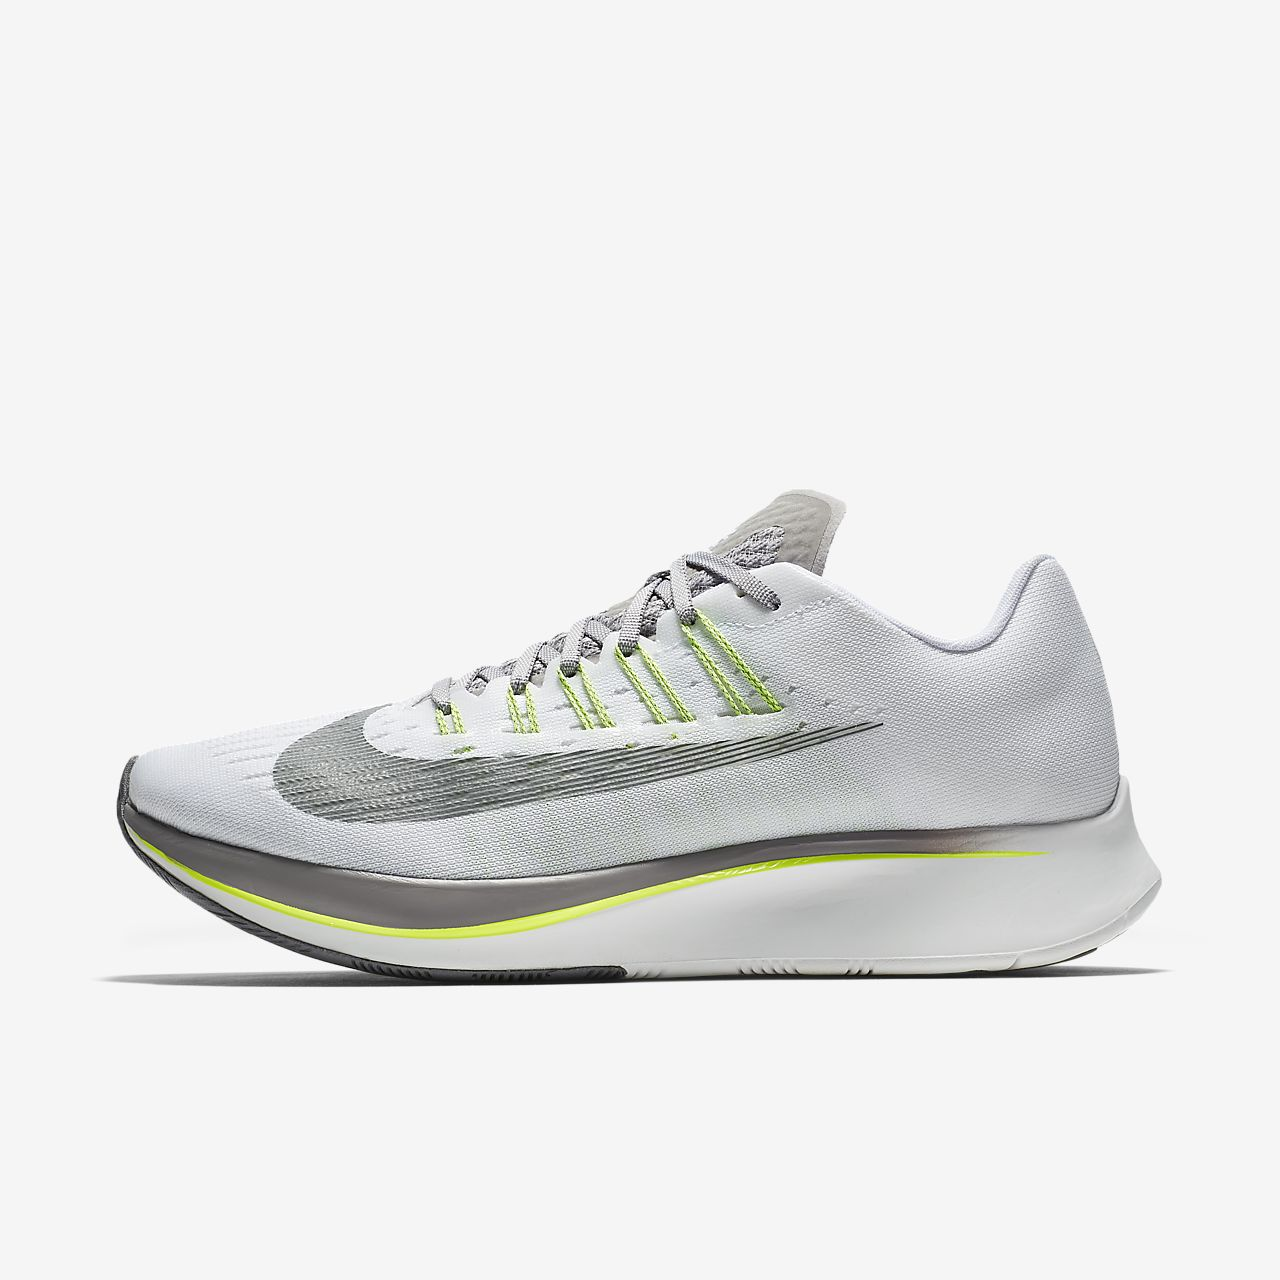 classic f8667 2ec50 Nike Zoom Fly Men s Running Shoe. Nike.com